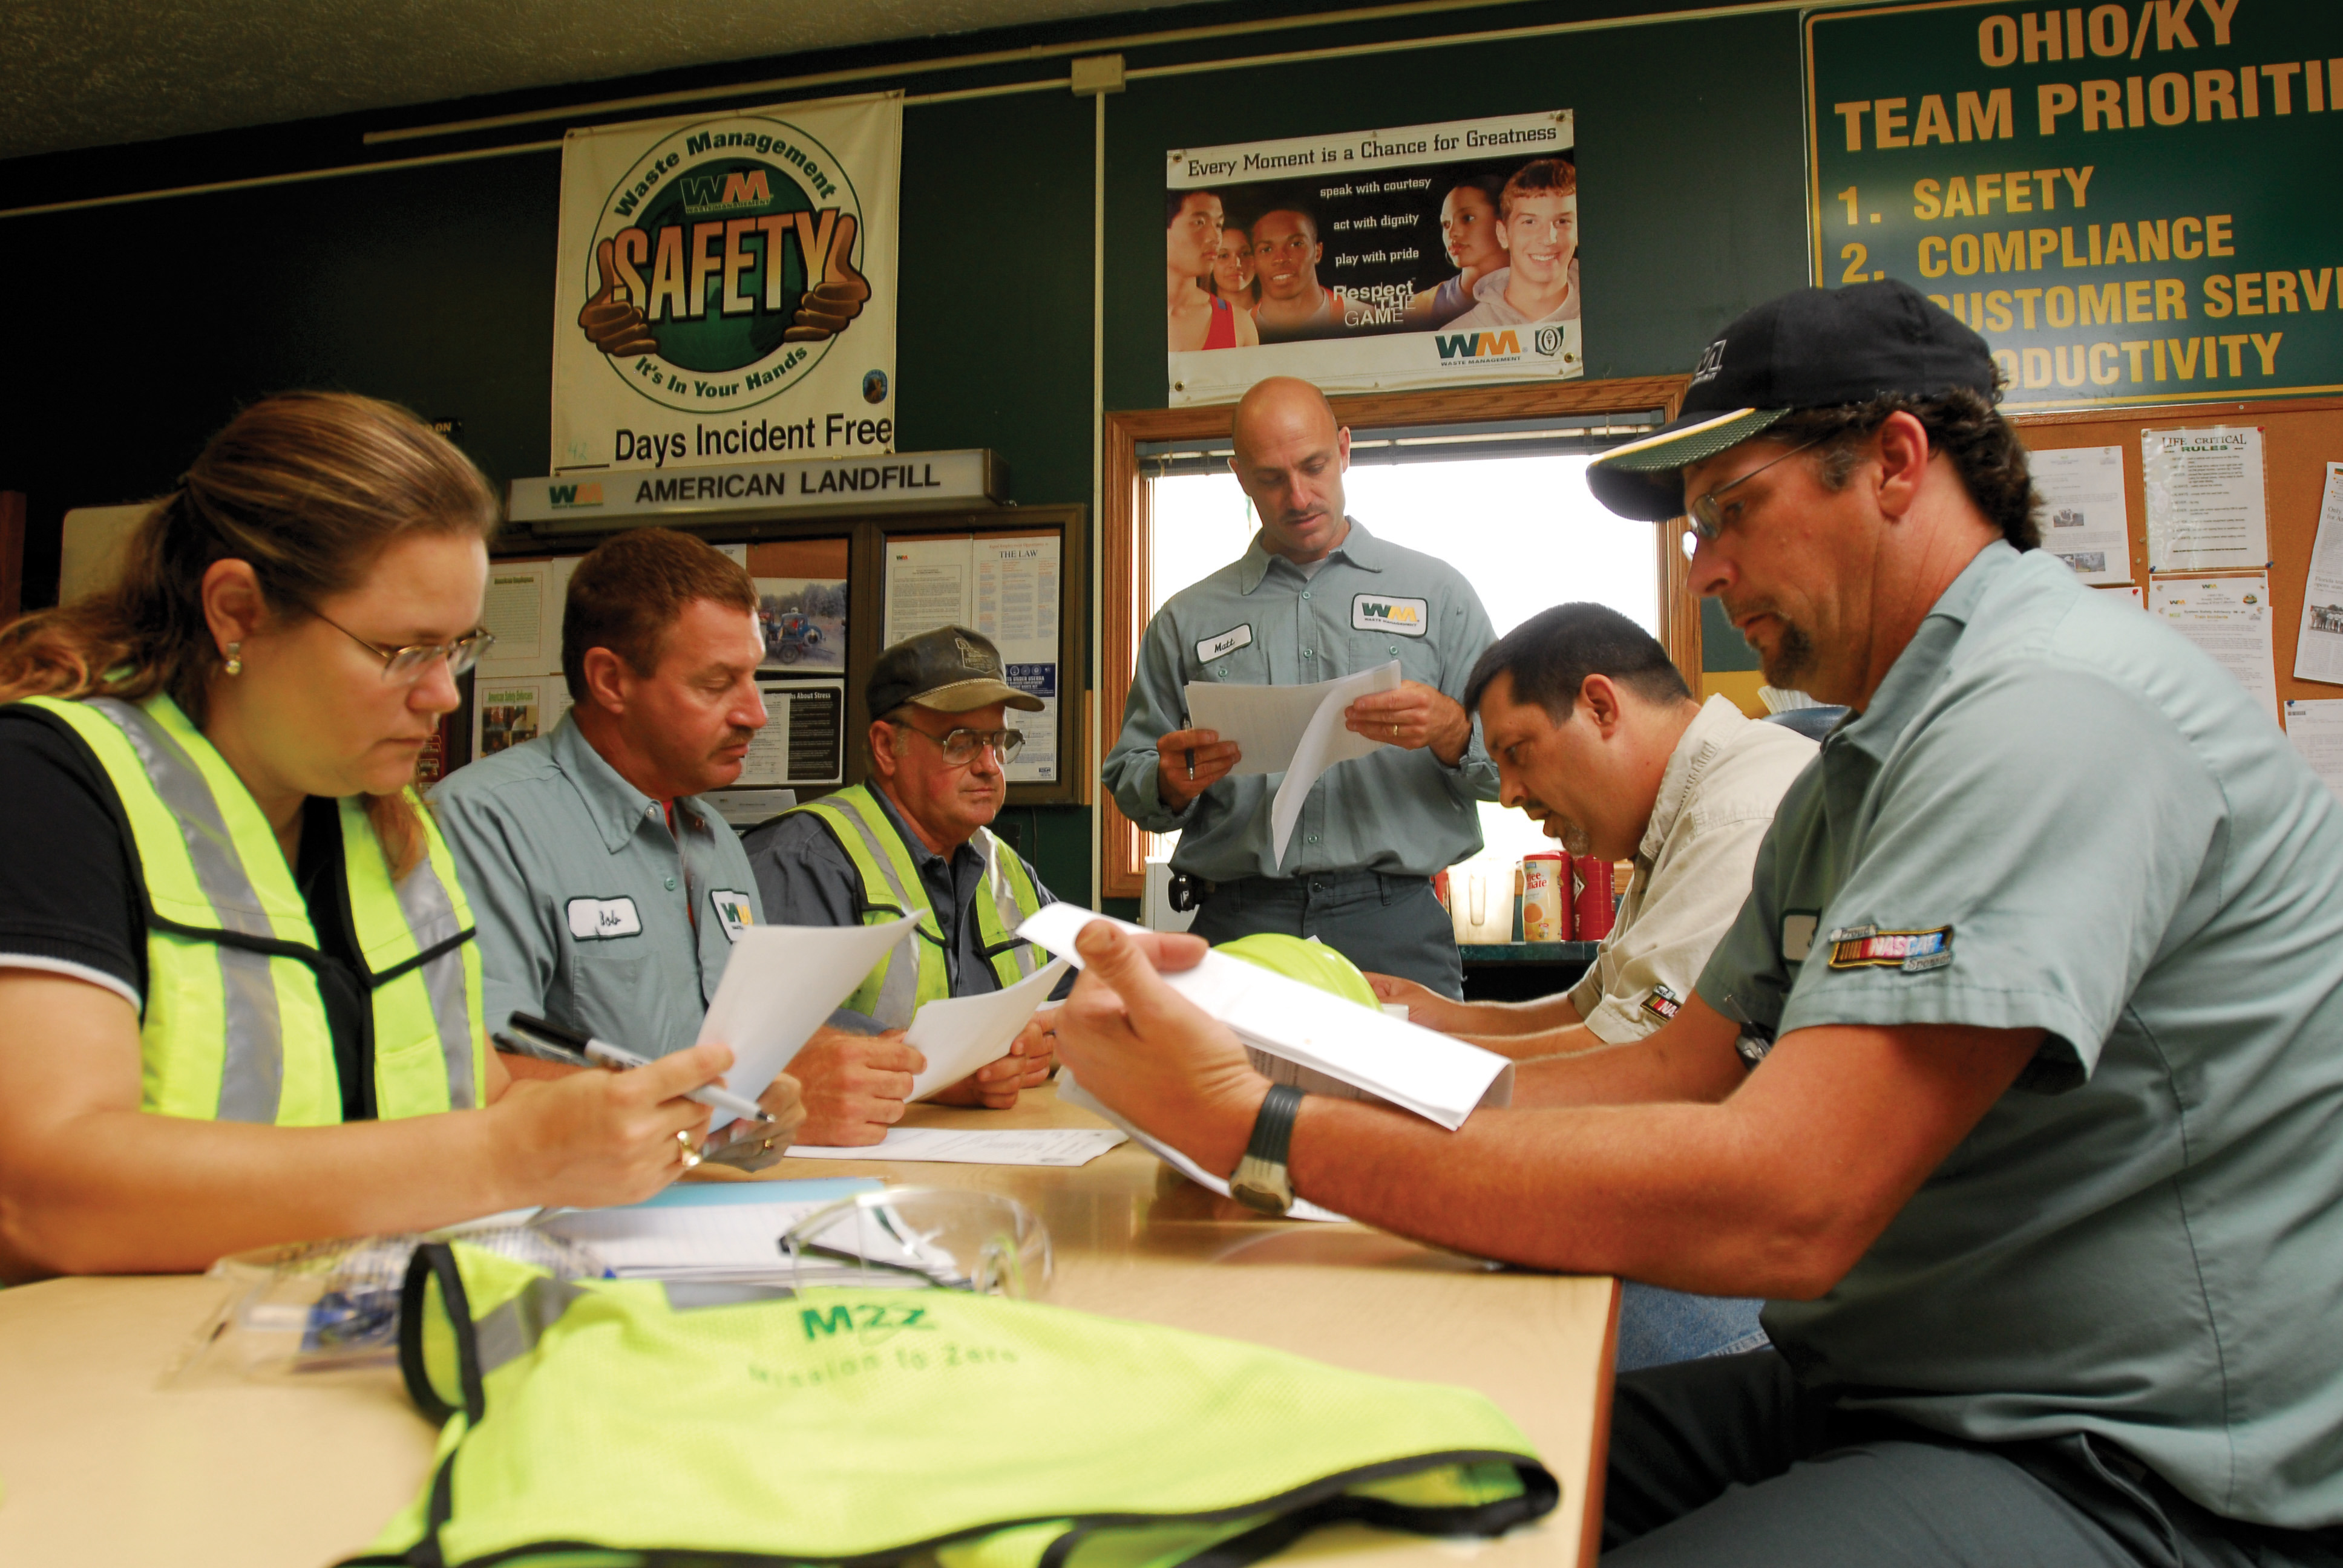 Waste Management employees discuss safety issues at a required weekly meeting.